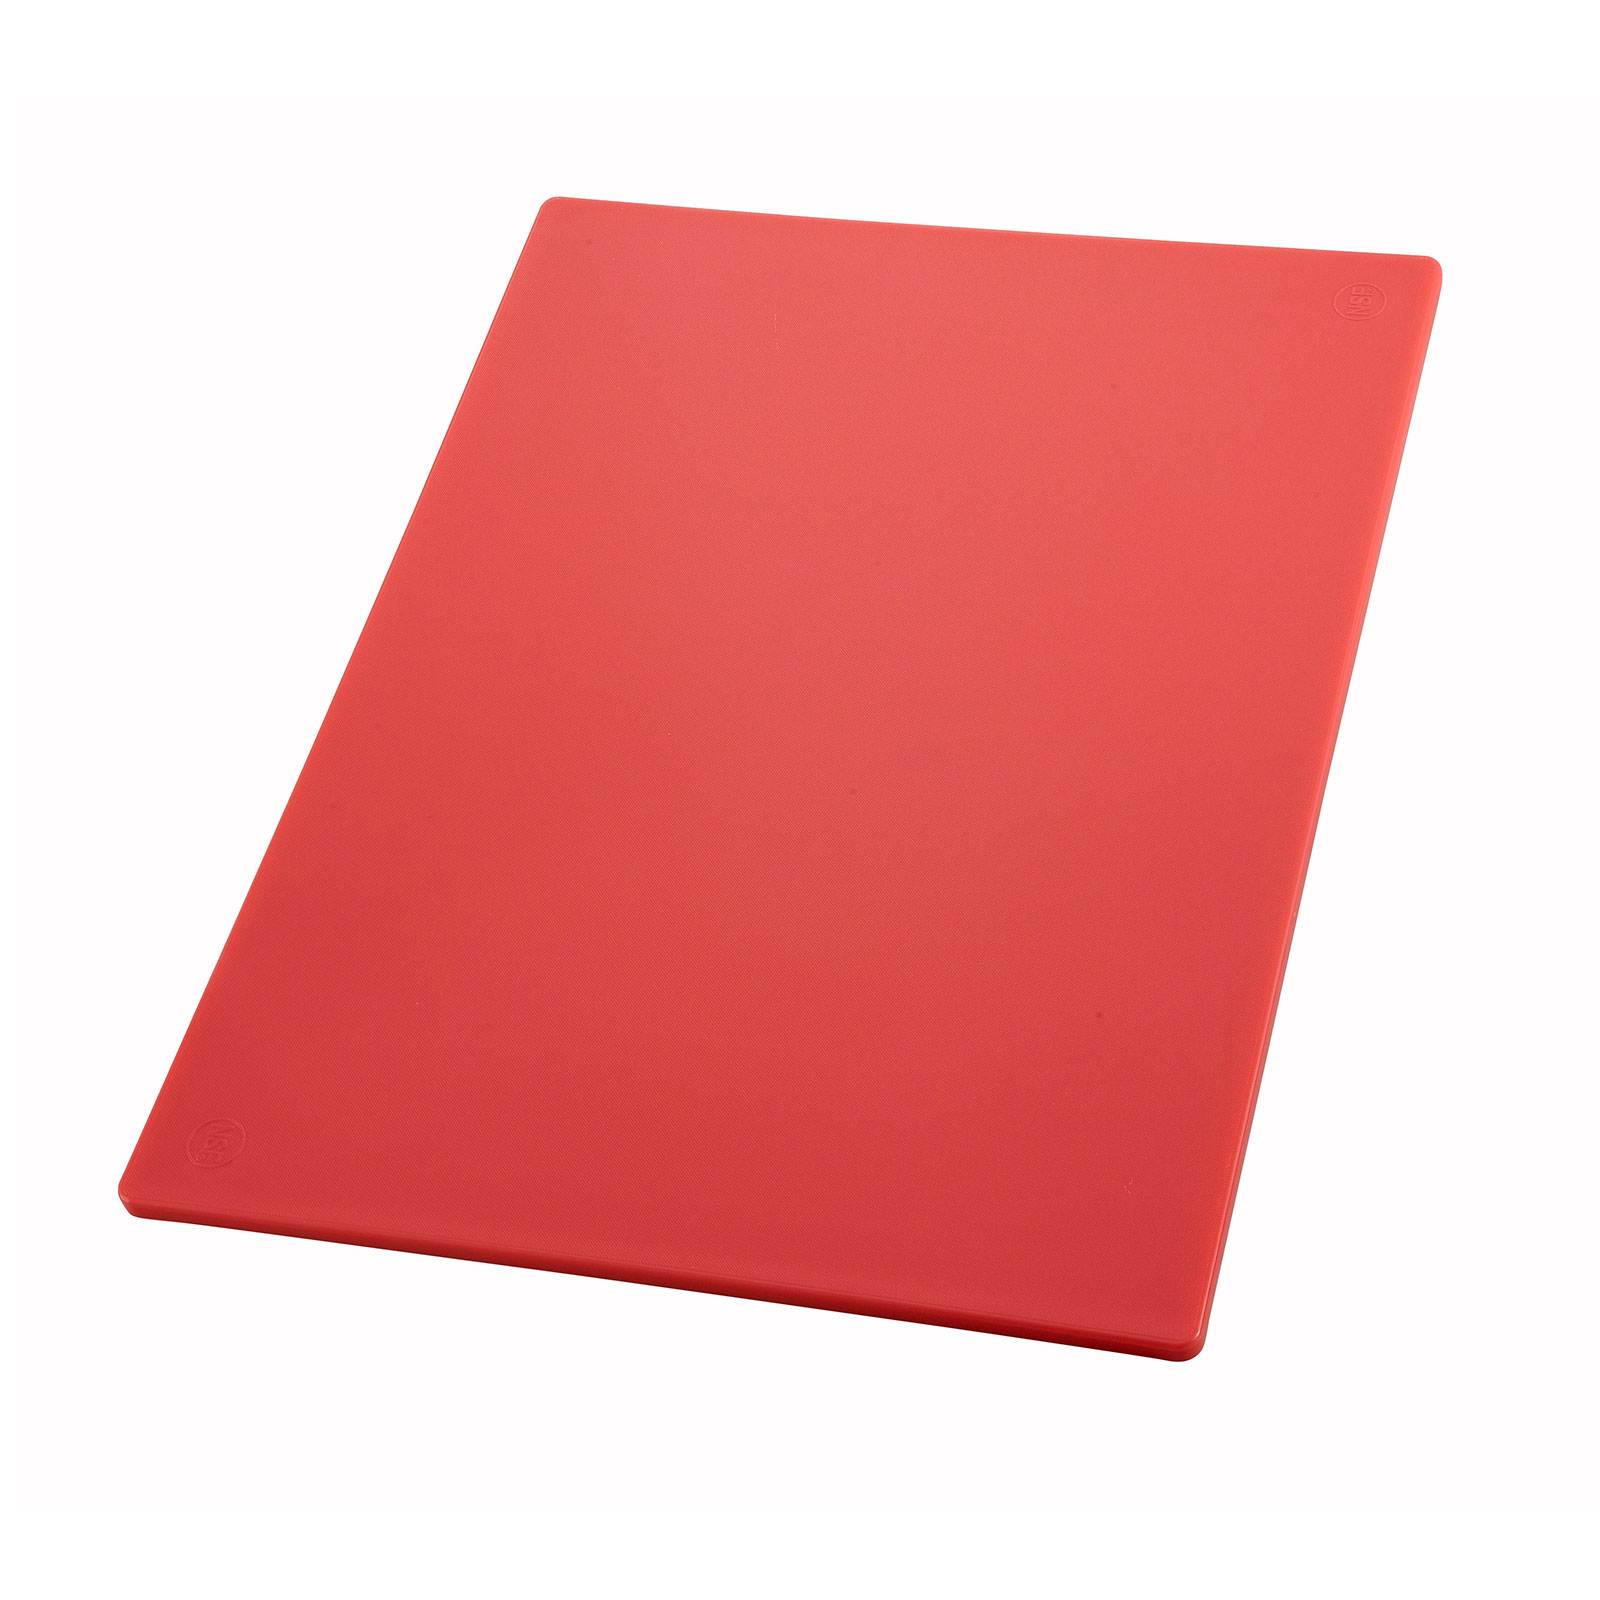 Winco CBRD-1824 cutting board, plastic